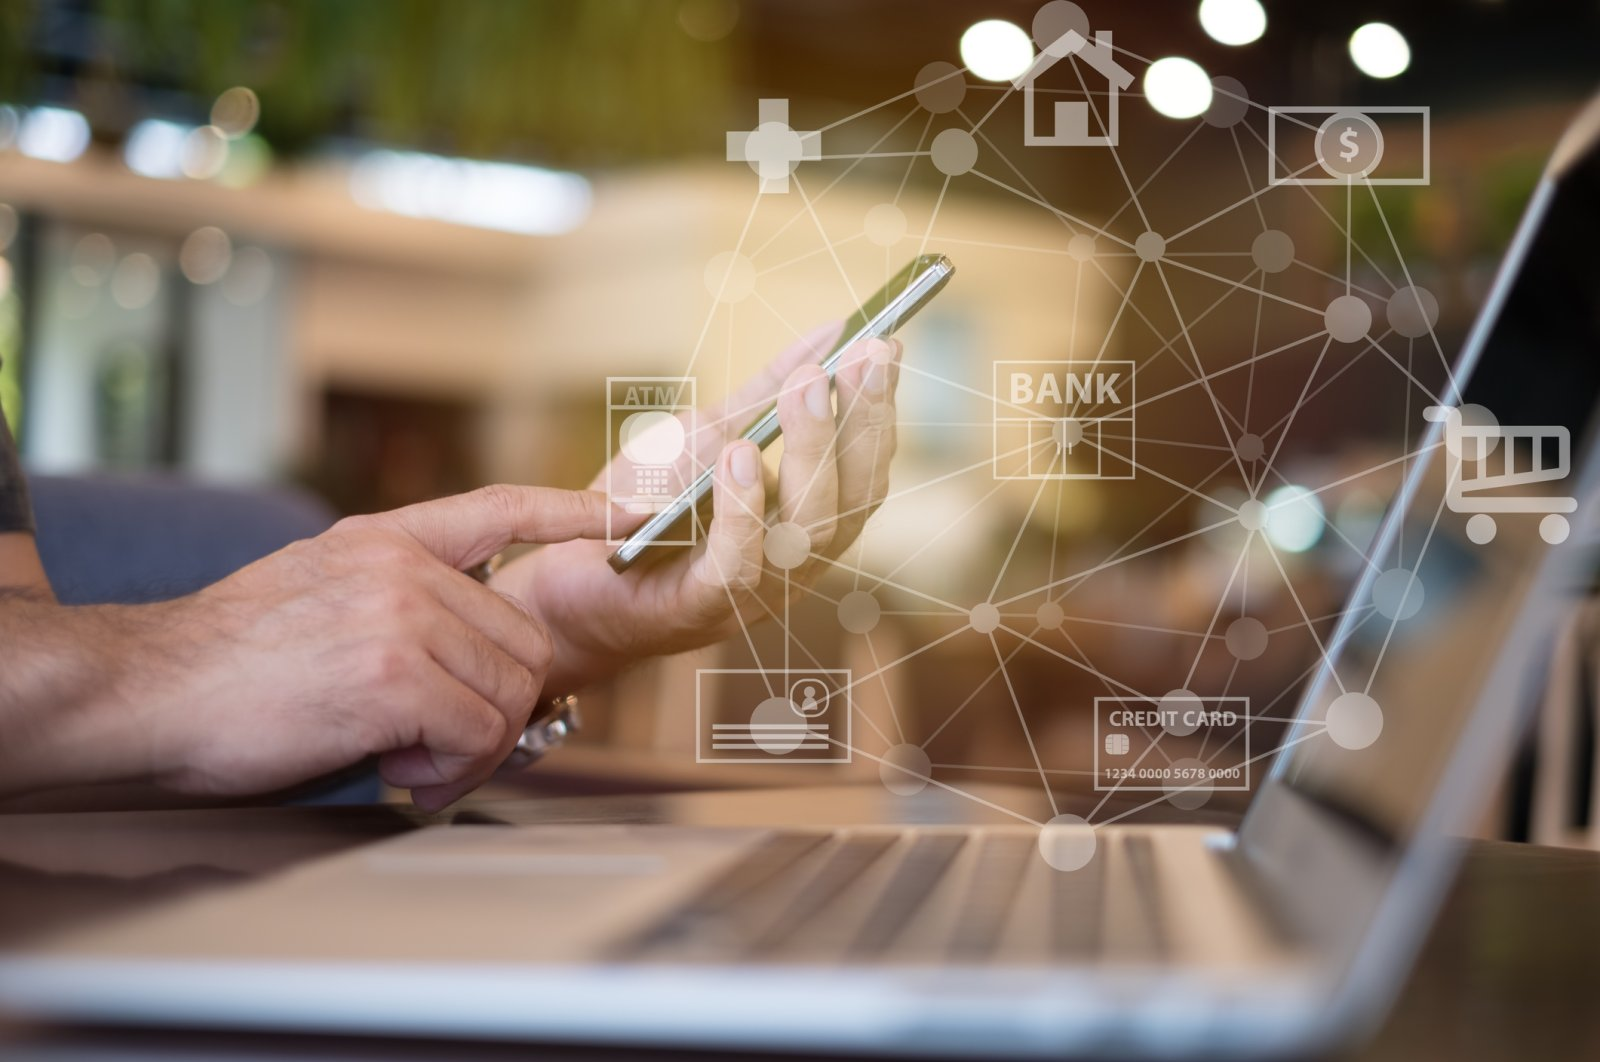 More and more users are opting for mobile-based apps to carry out their transactions while complying with social distancing guidelines. (iStock Photo)